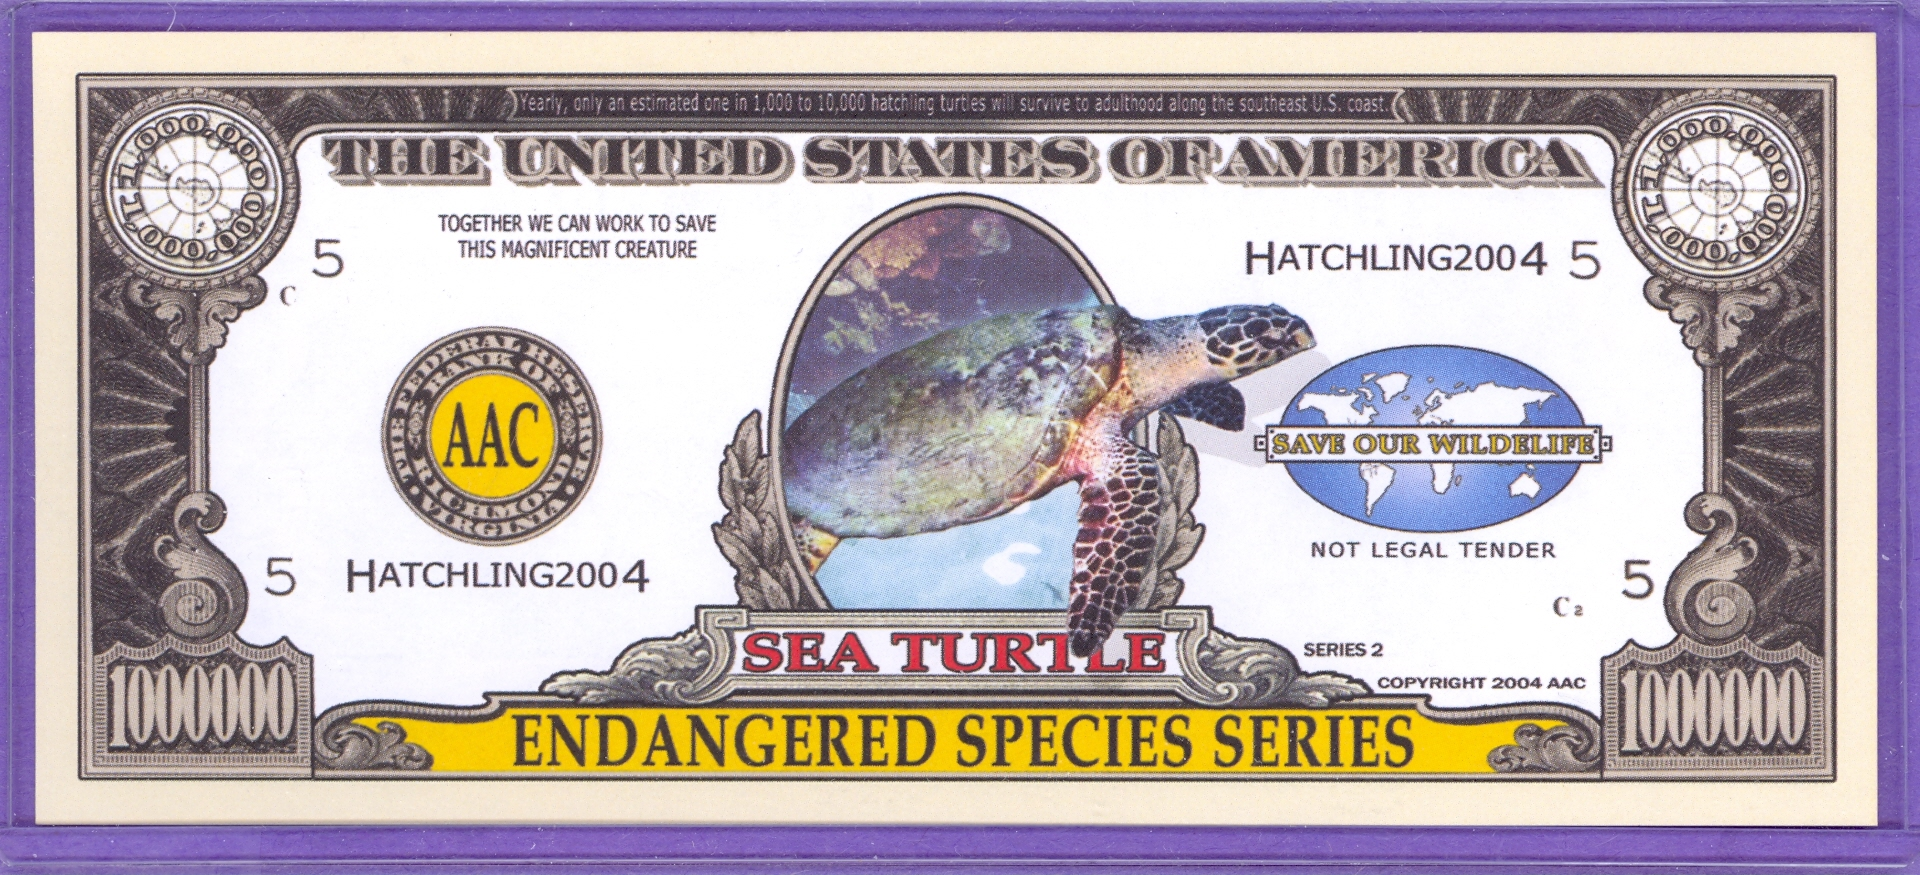 Sea Turtle $1,000,000 Novelty Note - Endangered Species